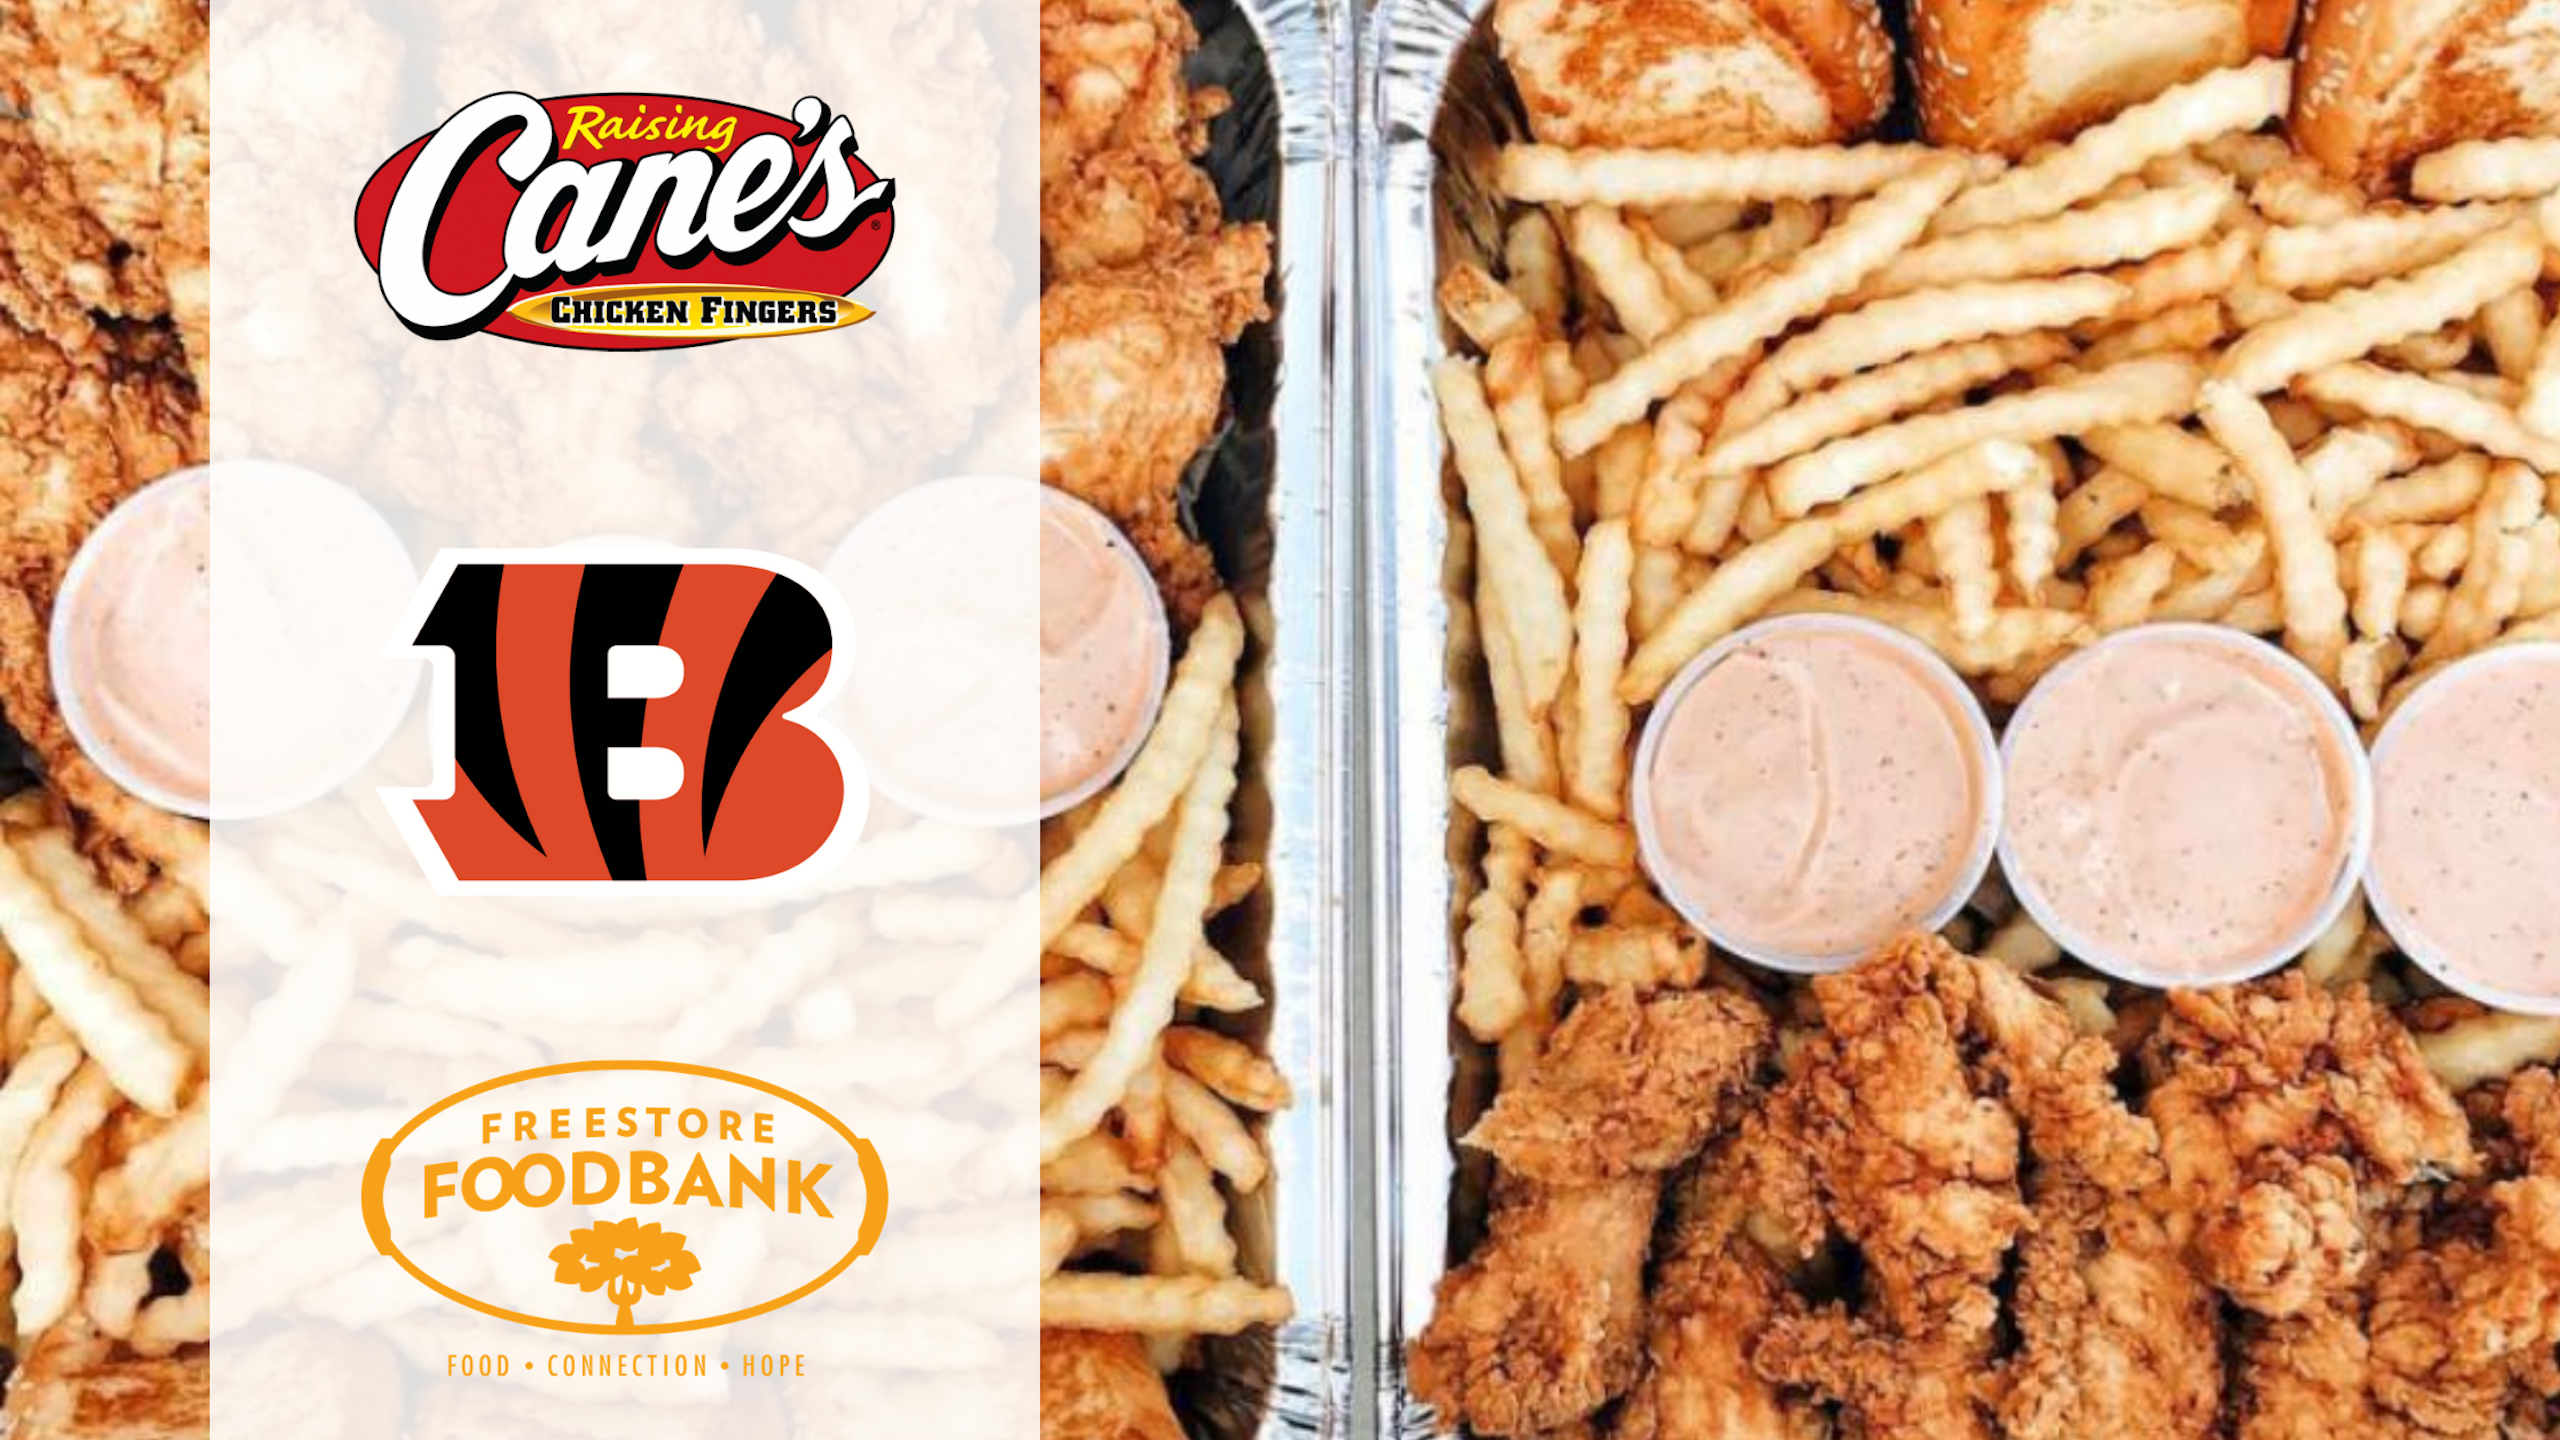 Raising Cane's Tailgate Sweepstakes